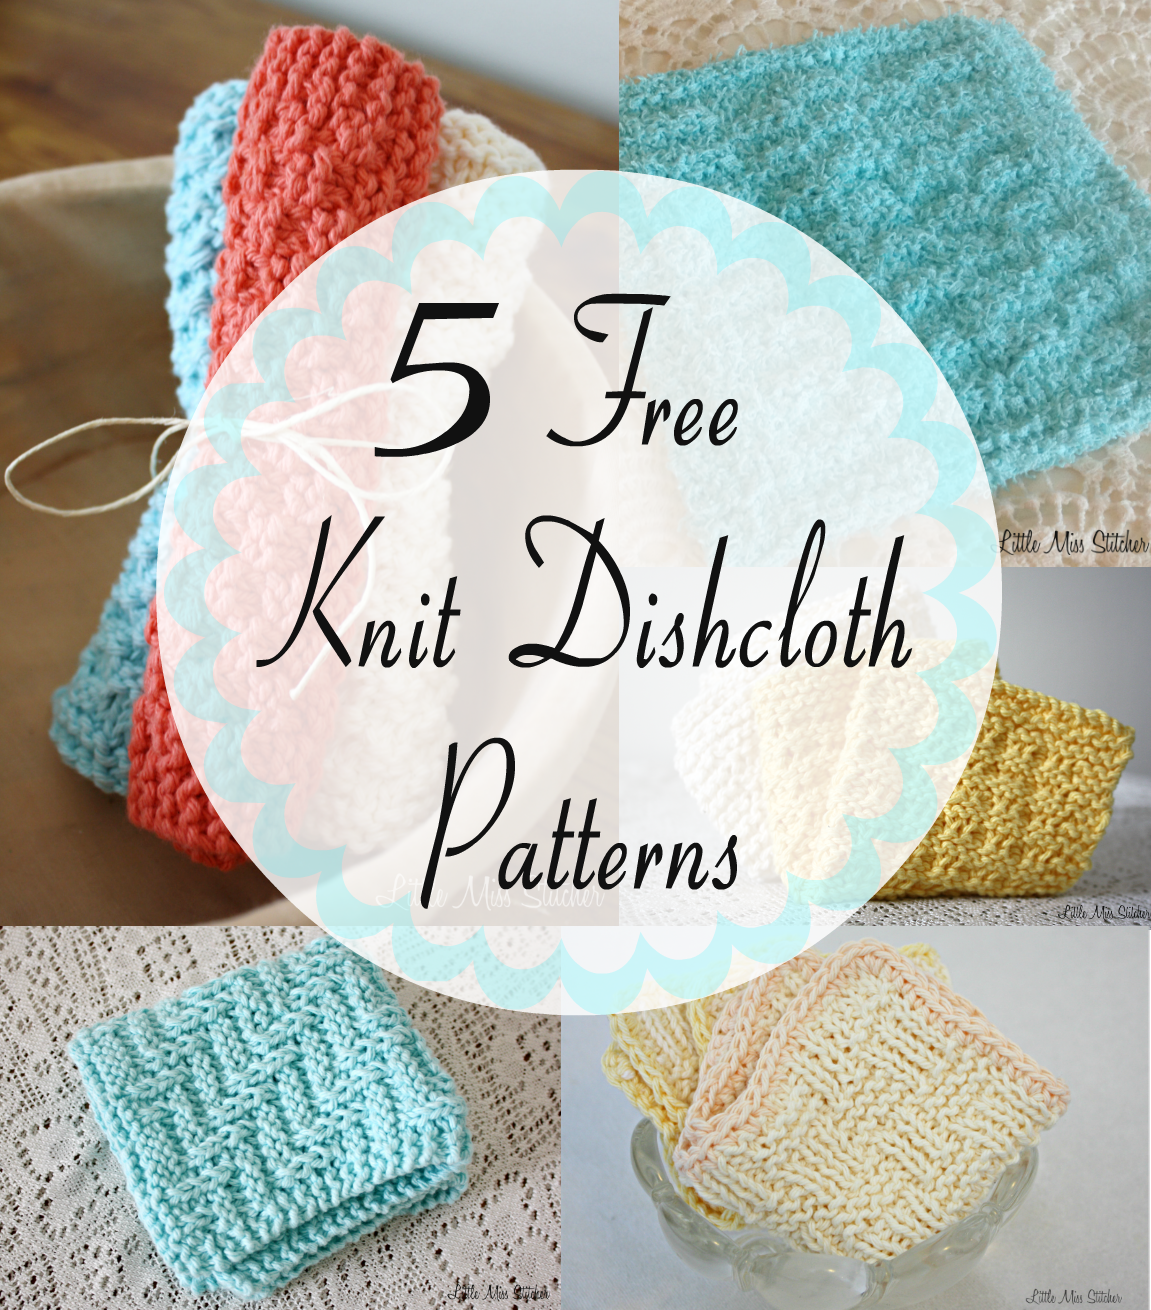 How To Knit Dishcloths Free Patterns : Little Miss Stitcher: 5 Free Knit Dishcloth Patterns